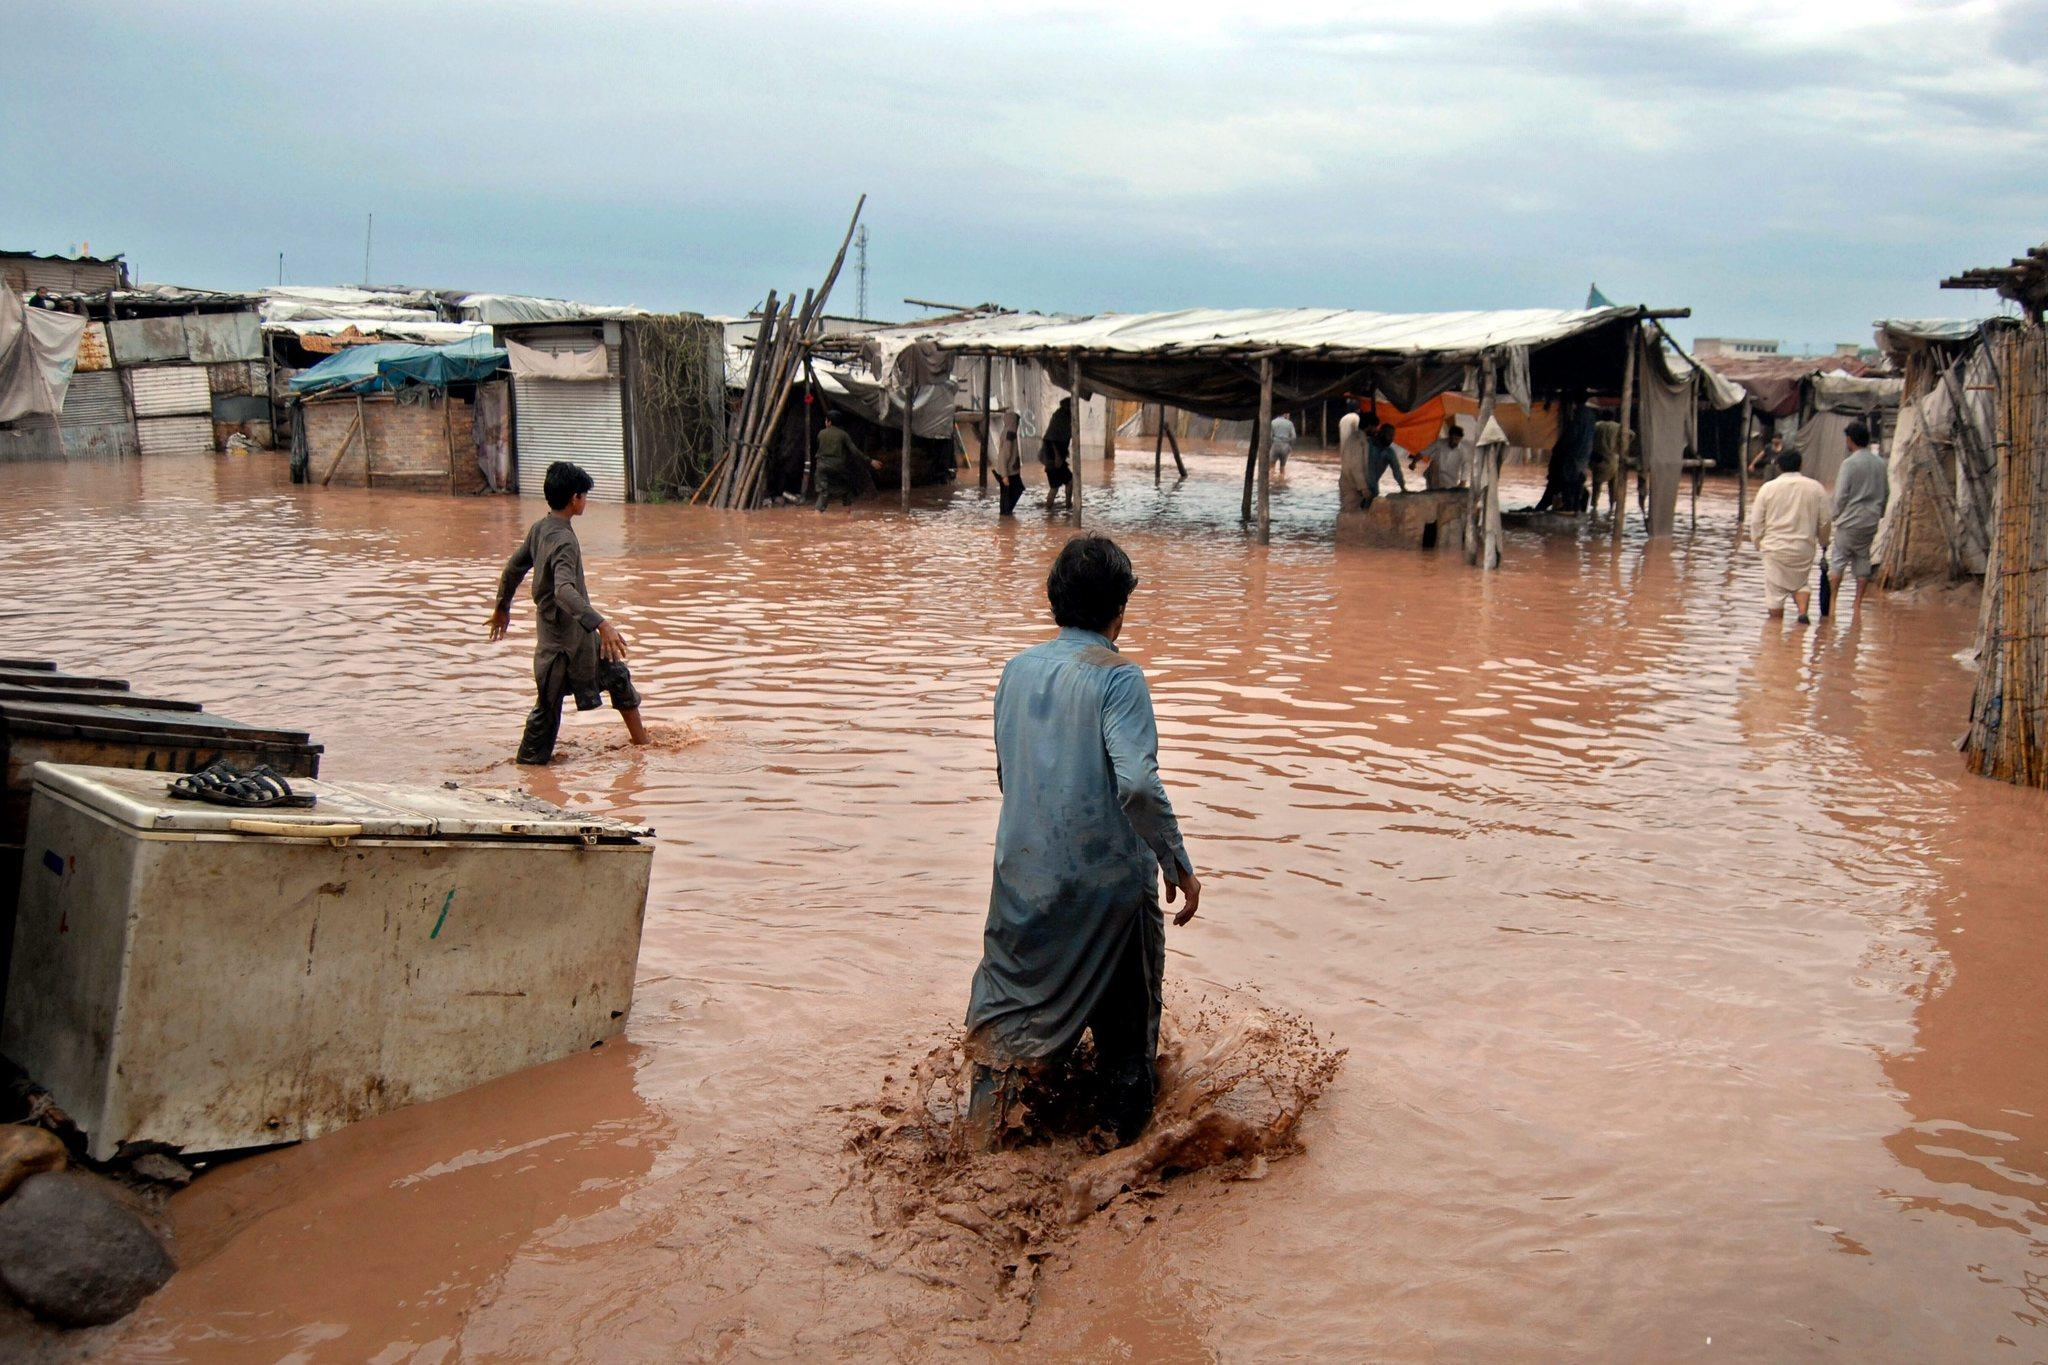 People gather around what is left of their shops after the floods swept through on the outskirts of Peshawar.